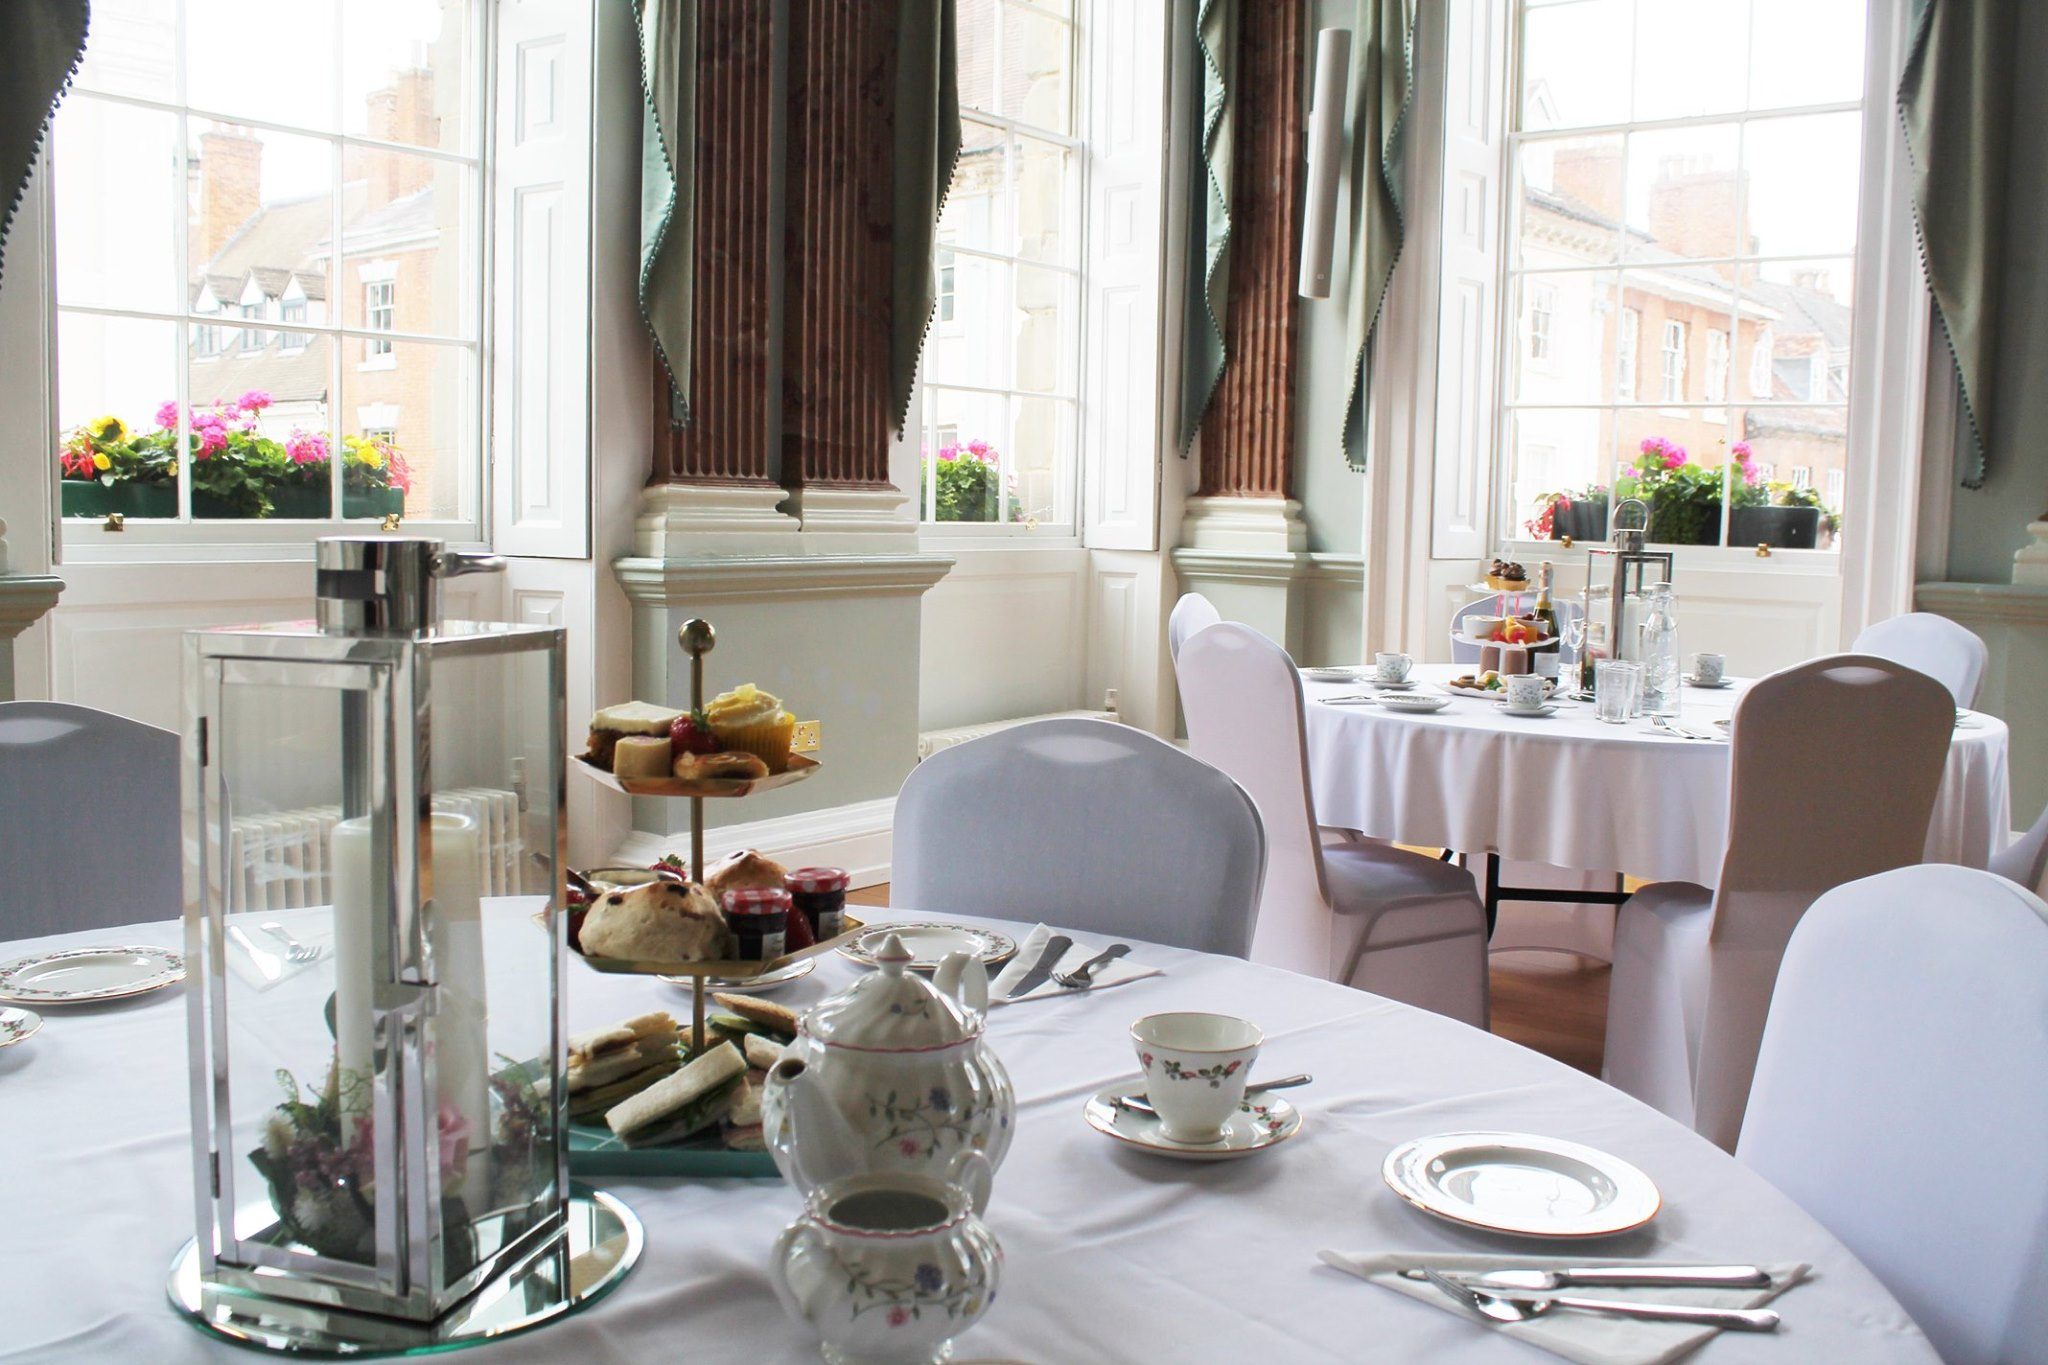 The Court House Warwick afternoon tea